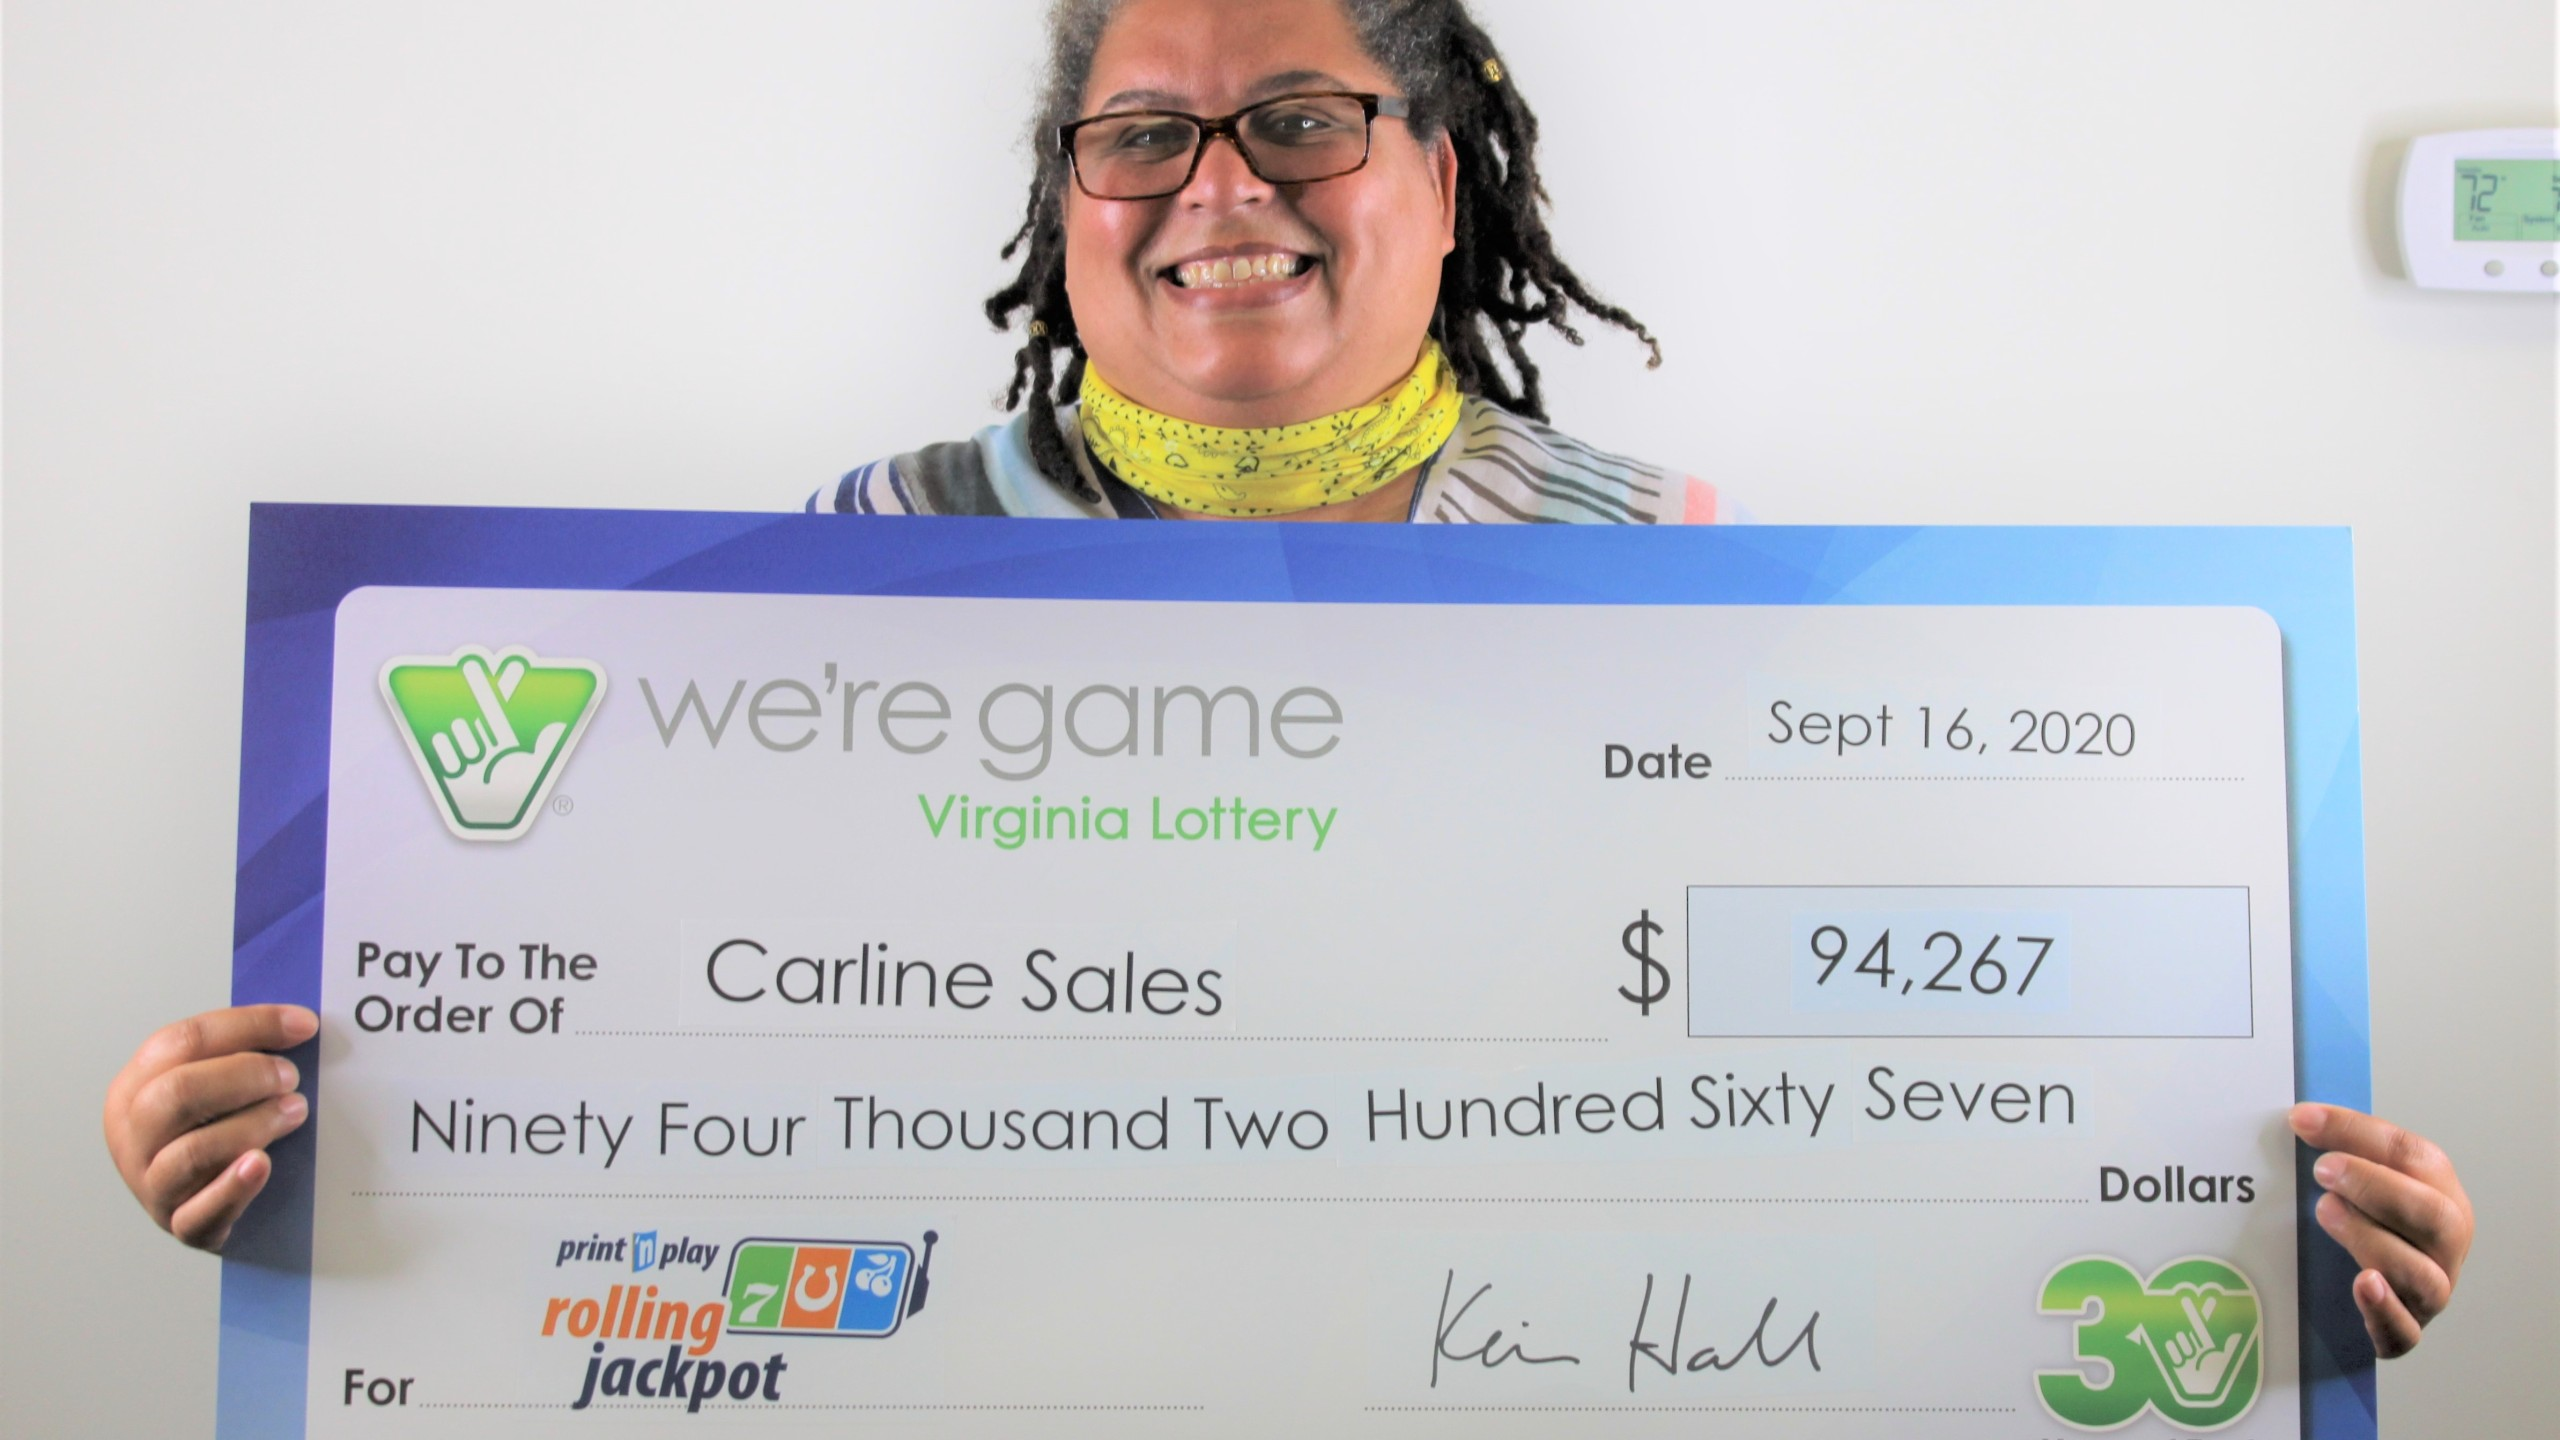 Carline Sales won $94,267 from the Virginia Lottery after purchasing a ticket from a Forest Express Lane. (Photo: Courtesy Virginia Lottery)